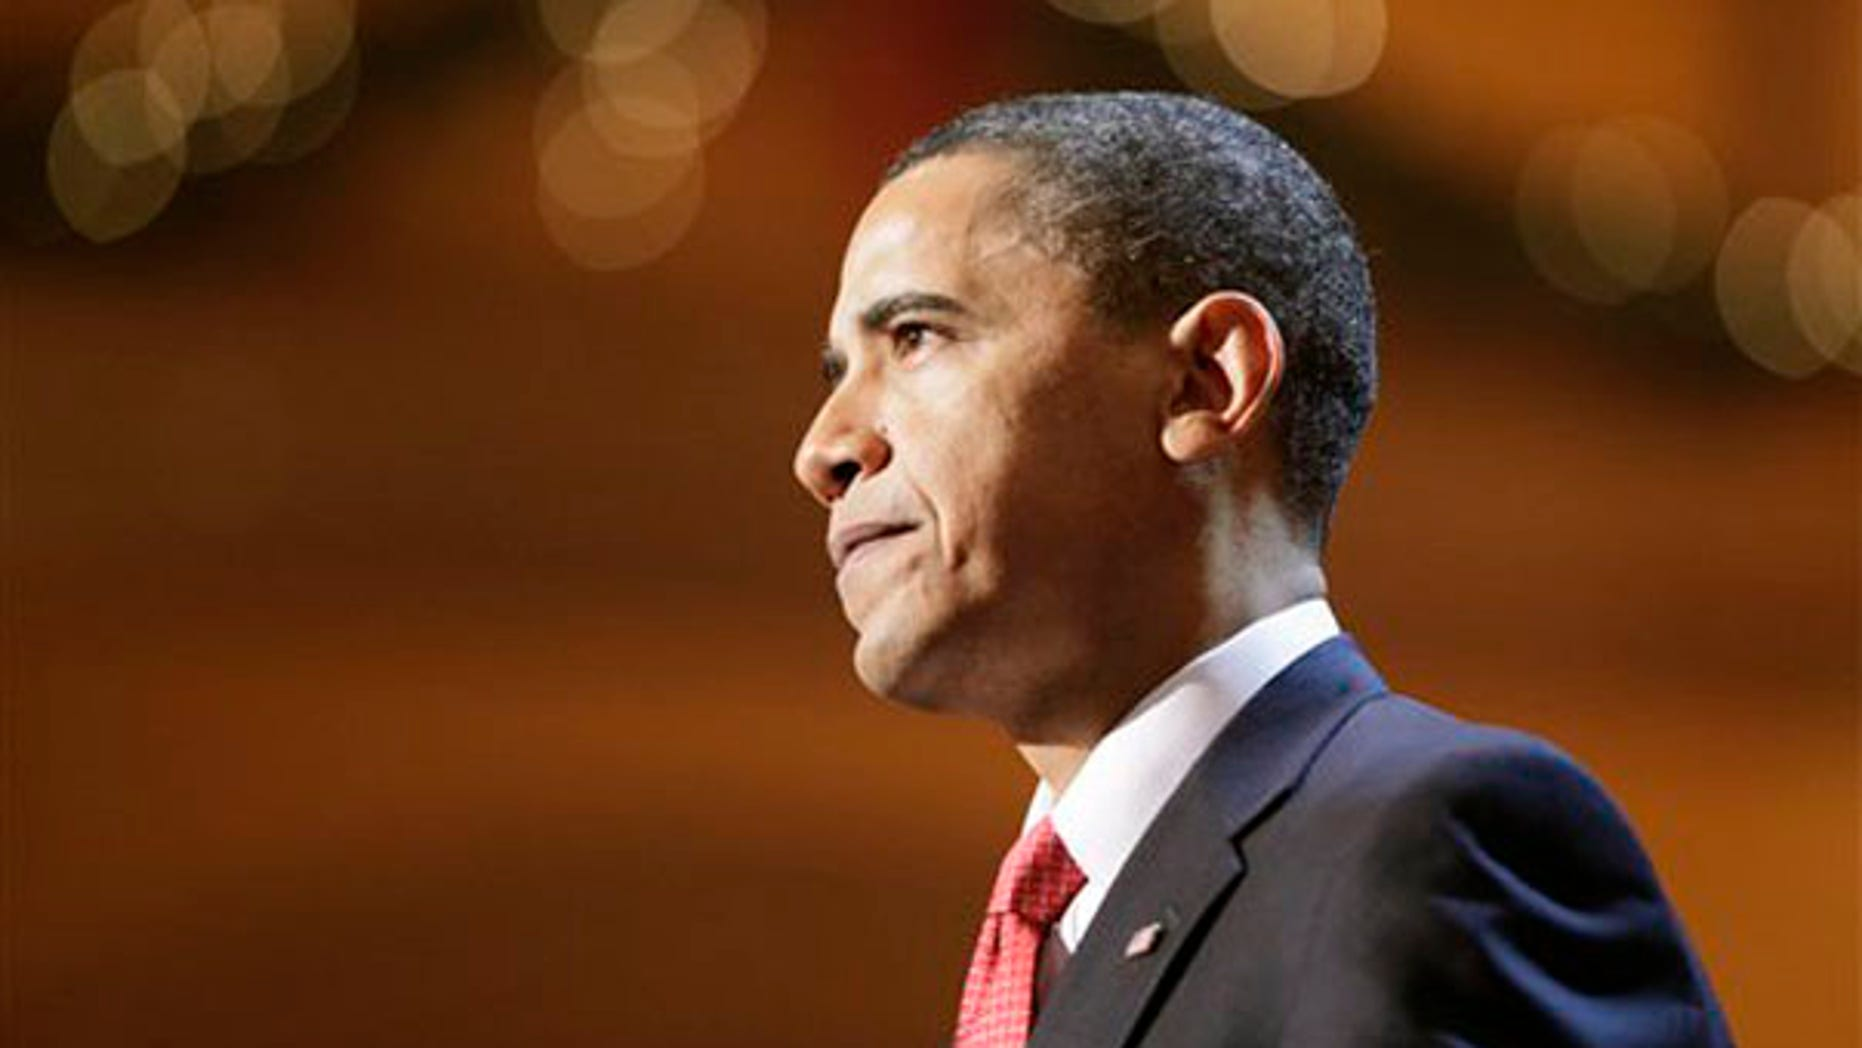 Sunday: President Obama speaks at a Christmas event held at the National Building Museum in Washington. (AP Photo)